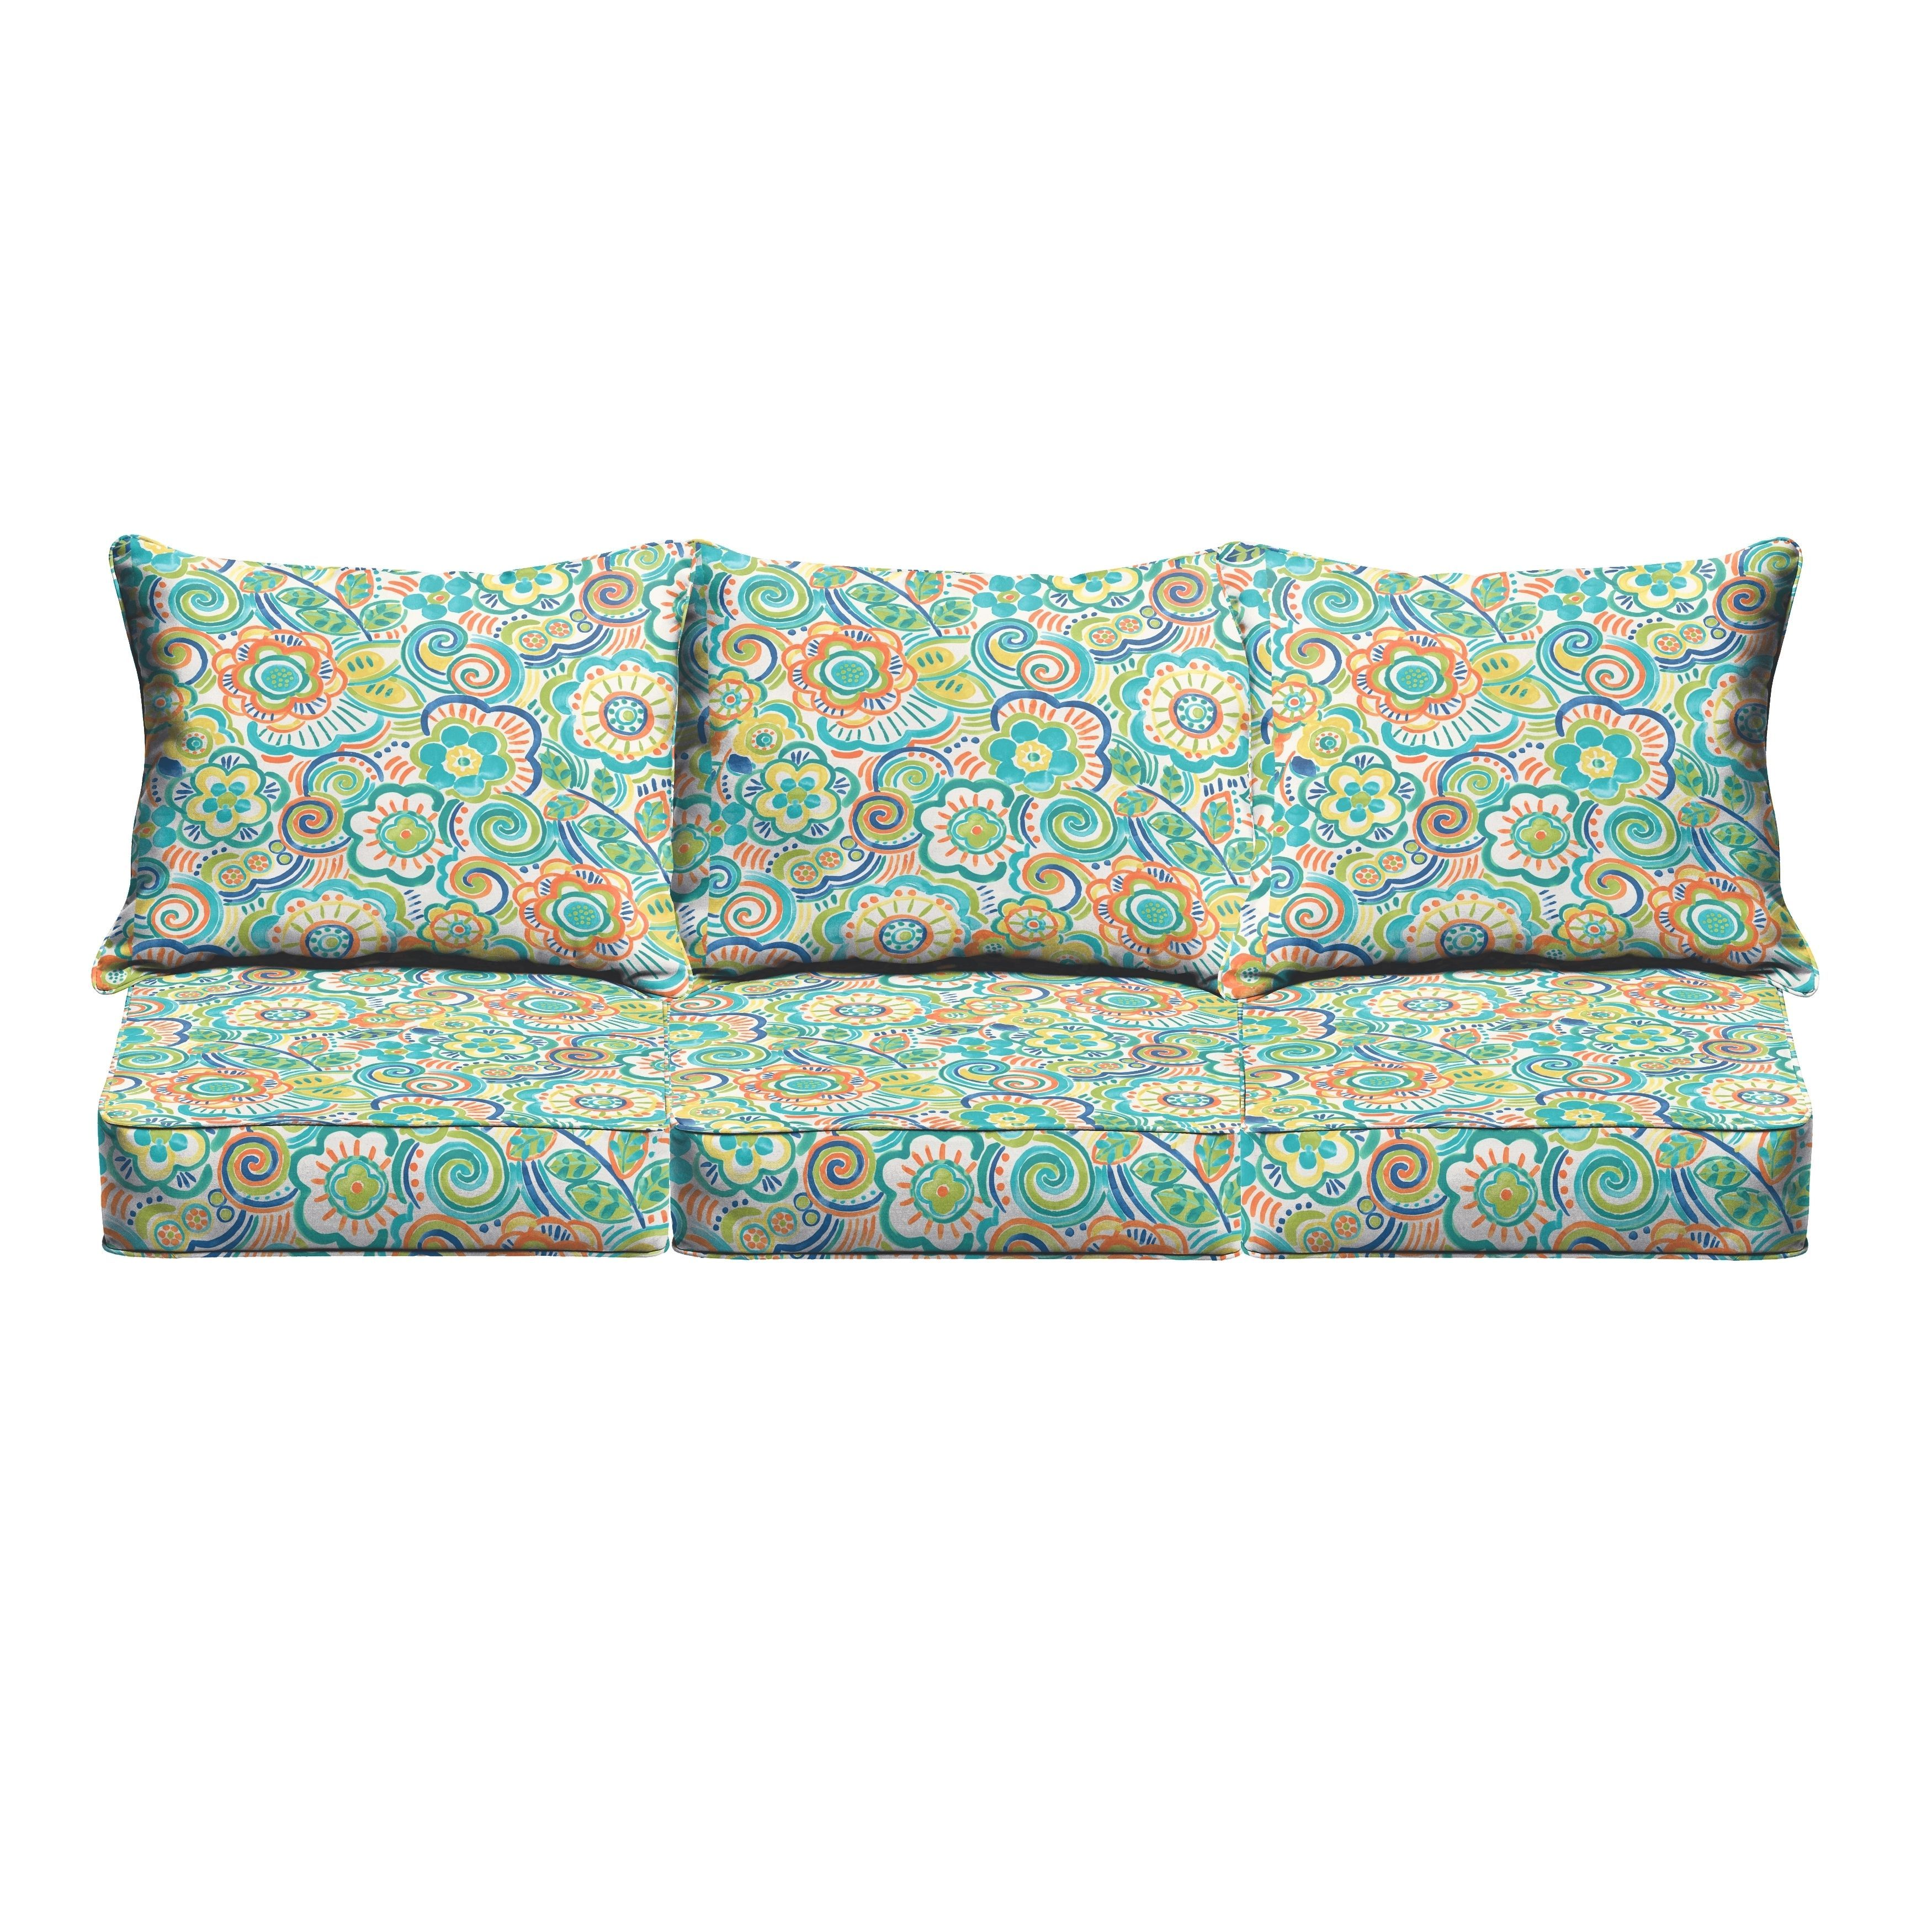 Blue rio floral indoor outdoor corded sofa cushion set ospcset